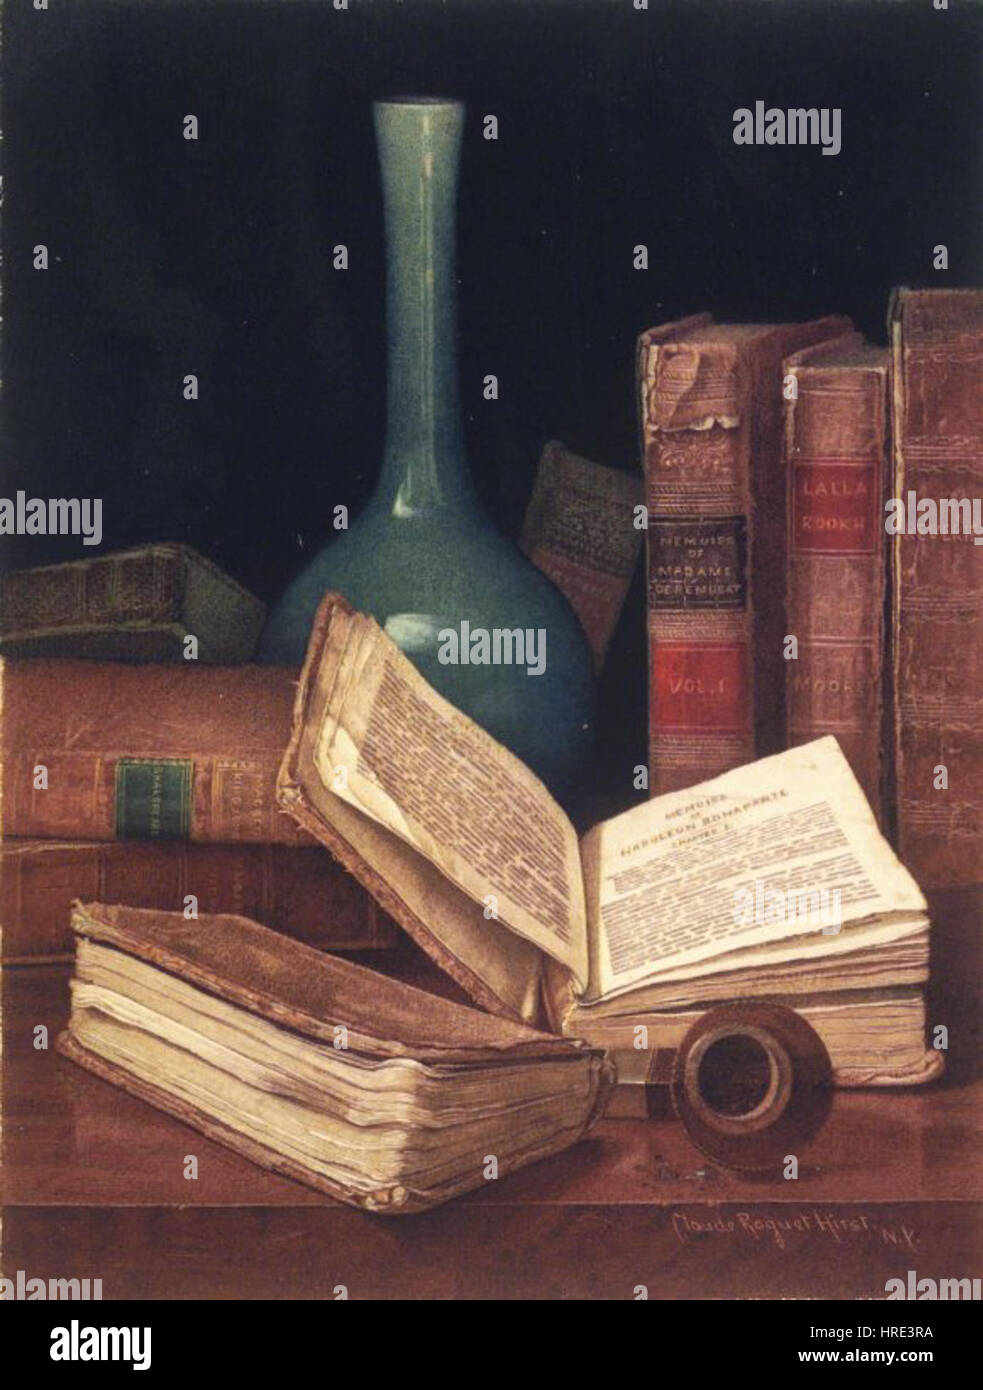 Brooklyn Museum - The Bookworm's Table - Claude Raguet Hirst Stock Photo